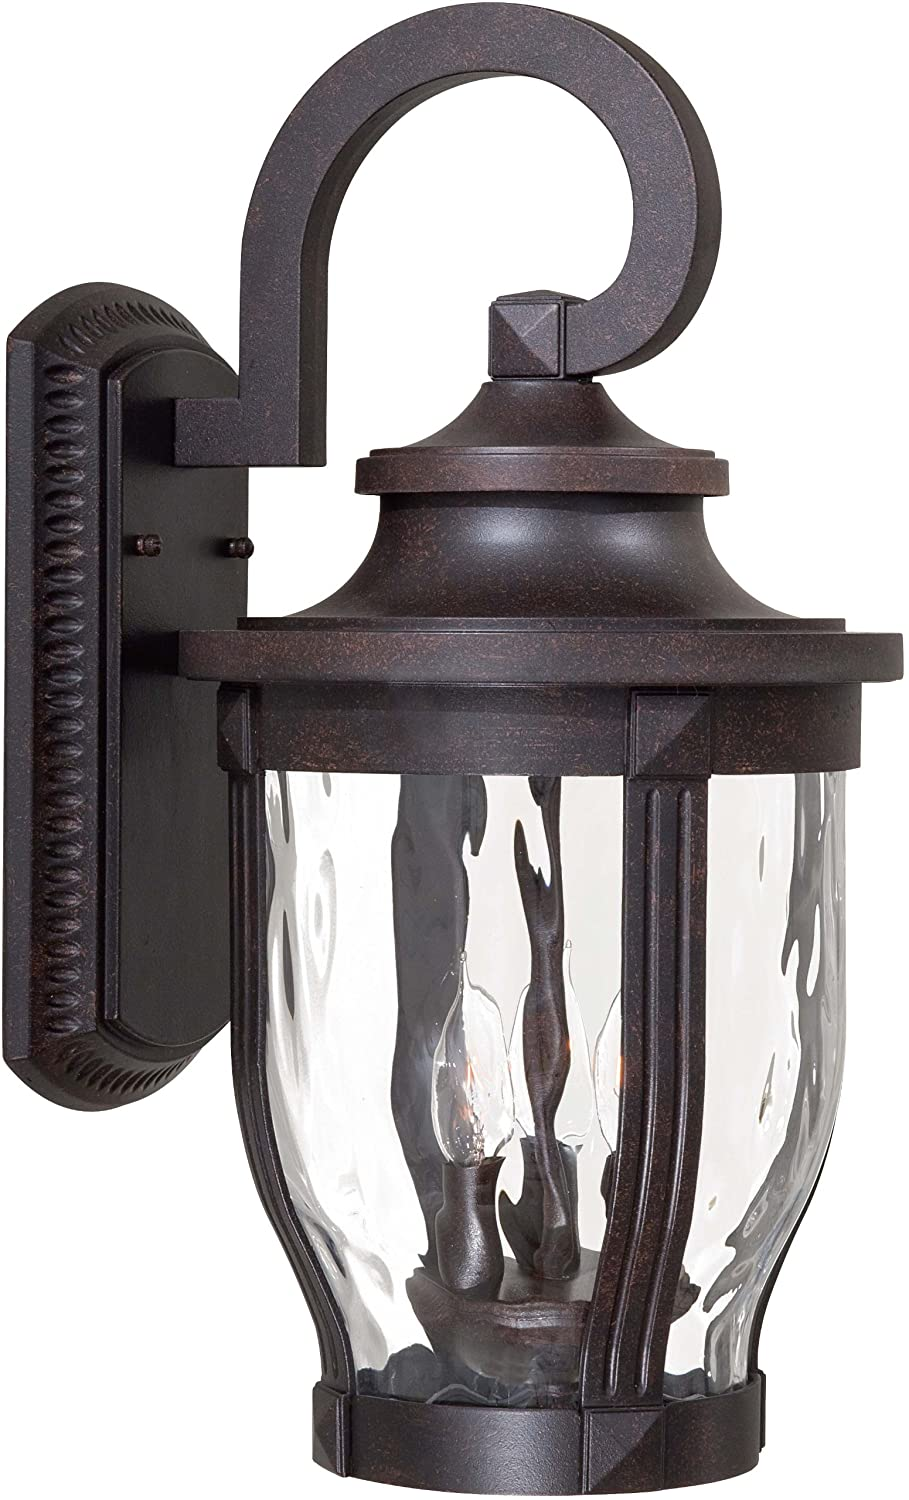 Minka lavery outdoor 8763 166 merrimack aluminum outdoor wall minka lavery outdoor 8763 166 merrimack aluminum outdoor wall sconce lighting 180 watts bronze wall porch lights amazon aloadofball Choice Image